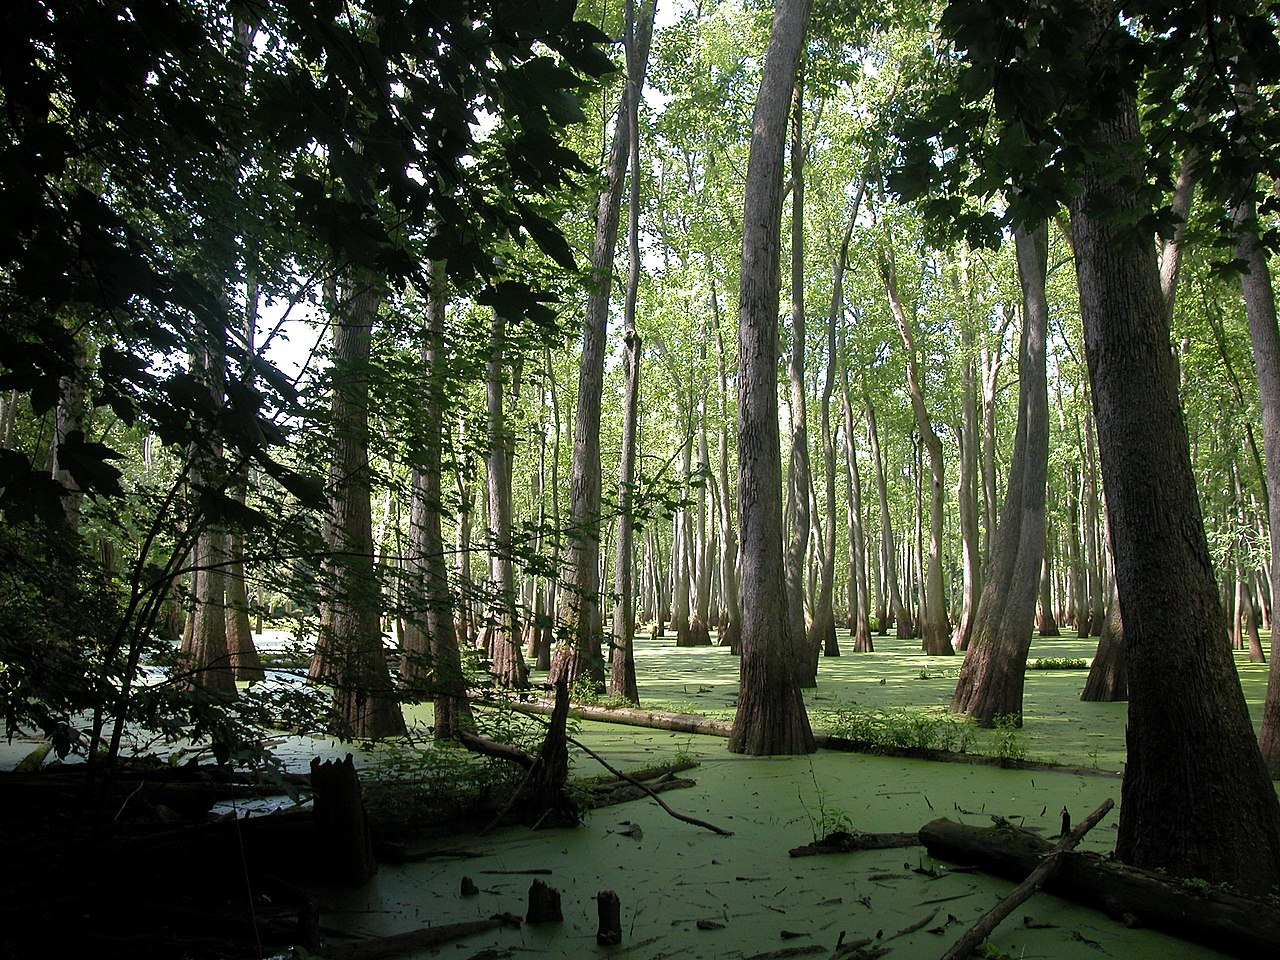 Outdoor Adventures In Illinois - Cache River State Natural Area